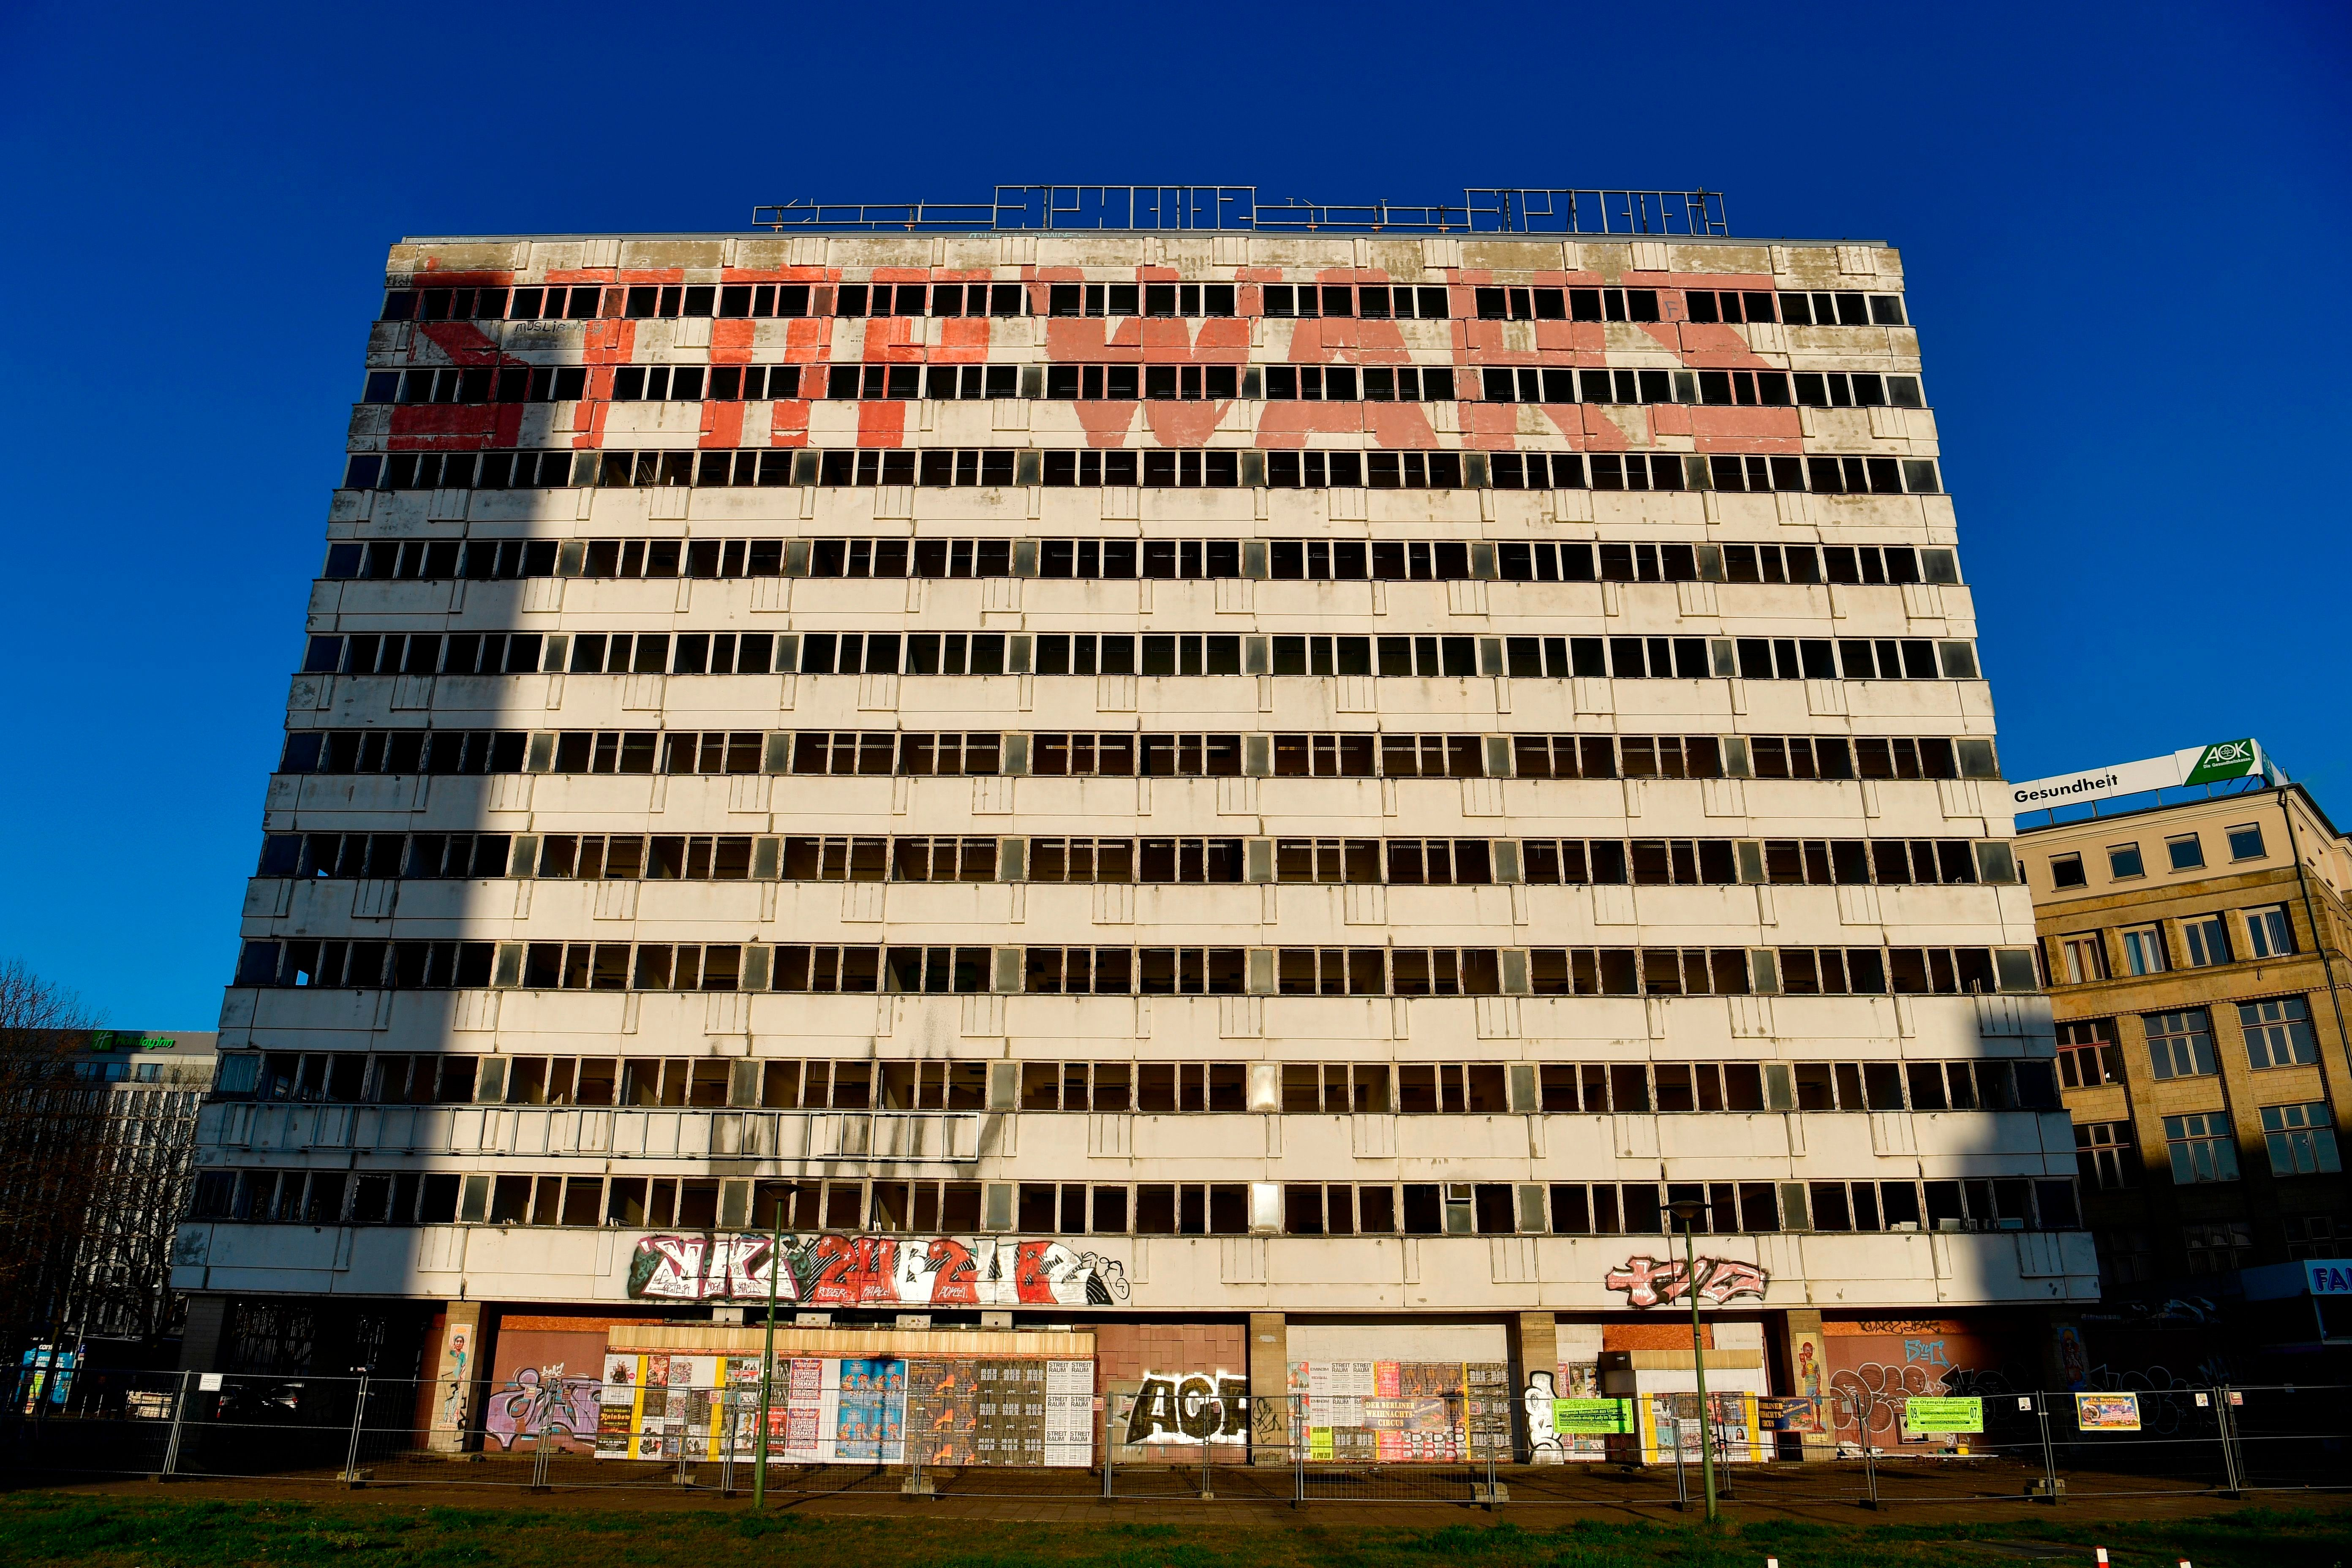 View of the former Haus der Statistik building in Berlin's Alexanderplatz district, taken on December 29, 2017. The 11-storey-high building complex, completed in 1970 to house east Germany's national institute for statistics, was recently bought by the city of Berlin for an estimated EUR 57 million. The complex, which boasts 55.000 square meters of space, has been empty since 2008. / AFP PHOTO / John MACDOUGALL        (Photo credit should read JOHN MACDOUGALL/AFP/Getty Images)